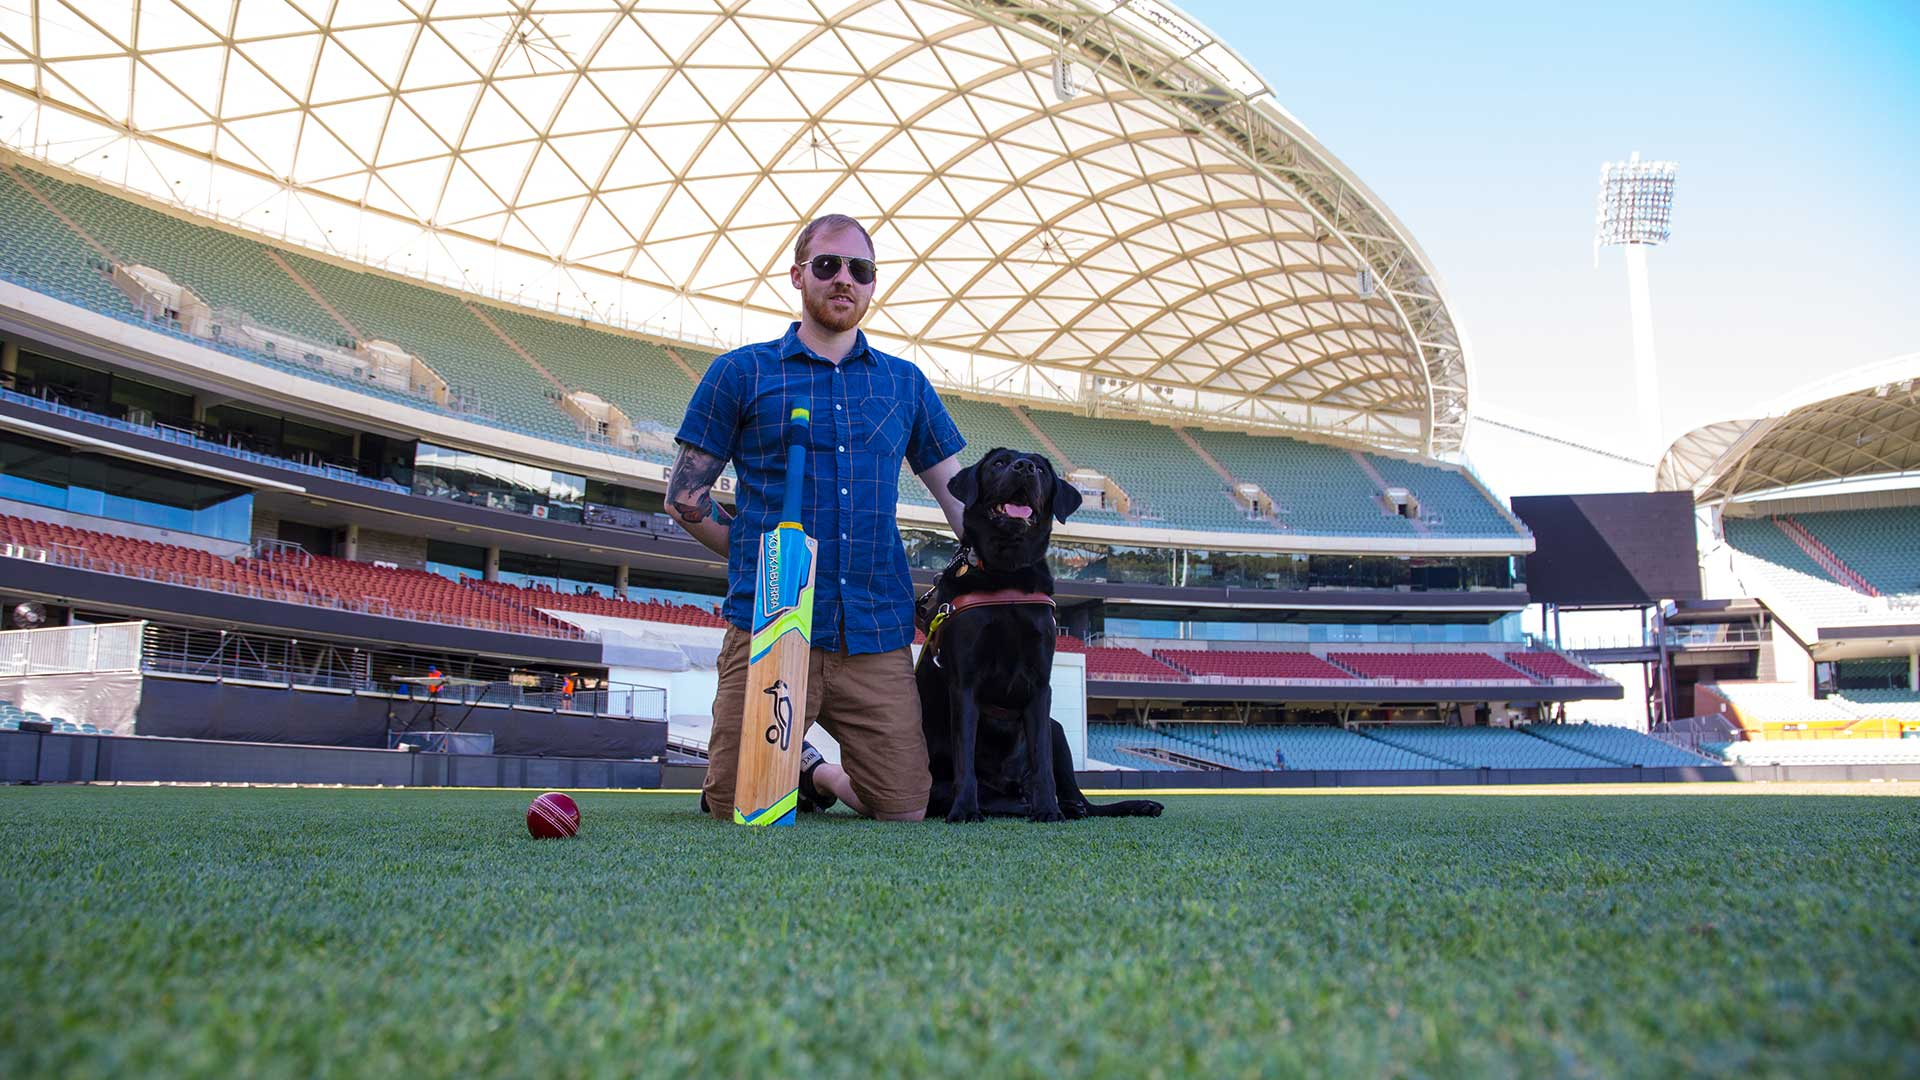 Adelaide Oval announces new charity partnership with Guide Dogs SA/NT